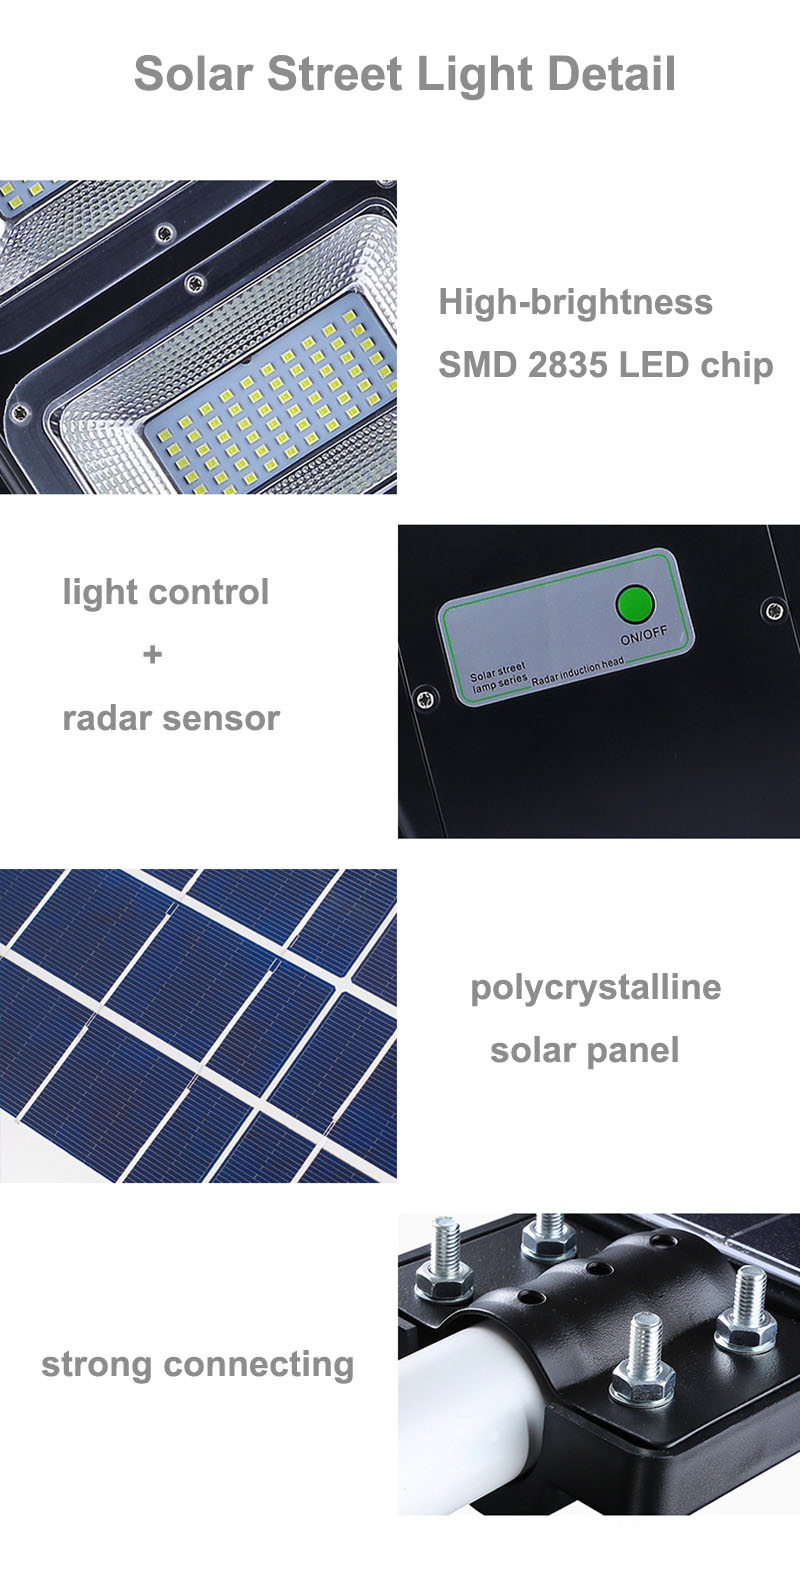 BSOD Led Solar Street Light 20W 40W 60W with Motion Sensor Remote Controller IP65 Waterproof LED Outdoor Light SMD2835 Led Chip